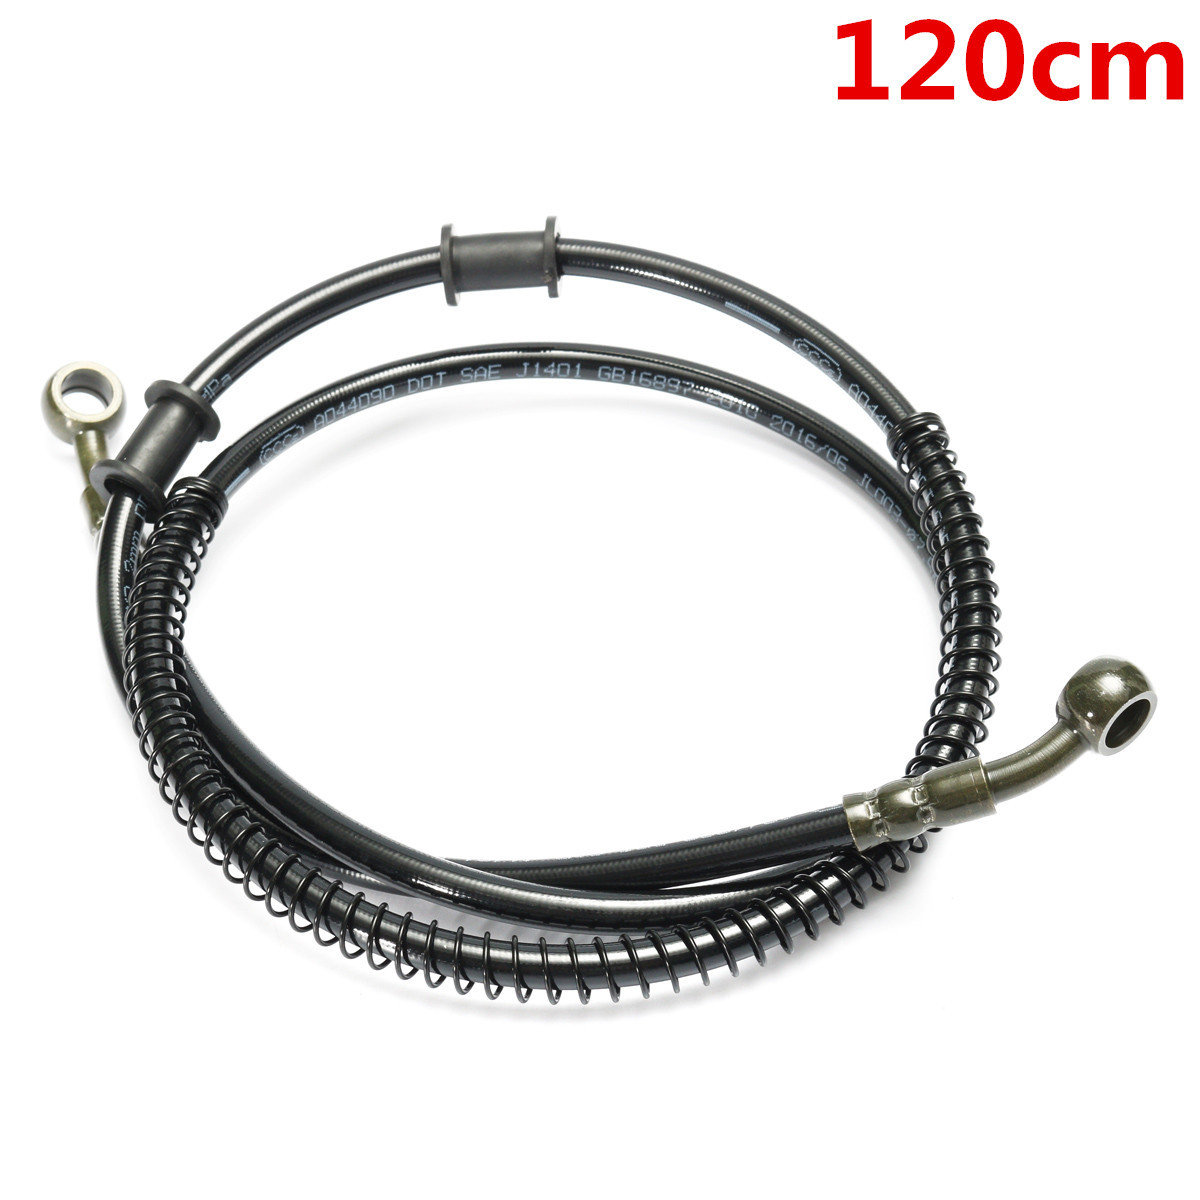 190cm Motorcycle Braided Brake Clutch Oil Hose Line Pipe 10mm 100cm NICOLIE 50cm